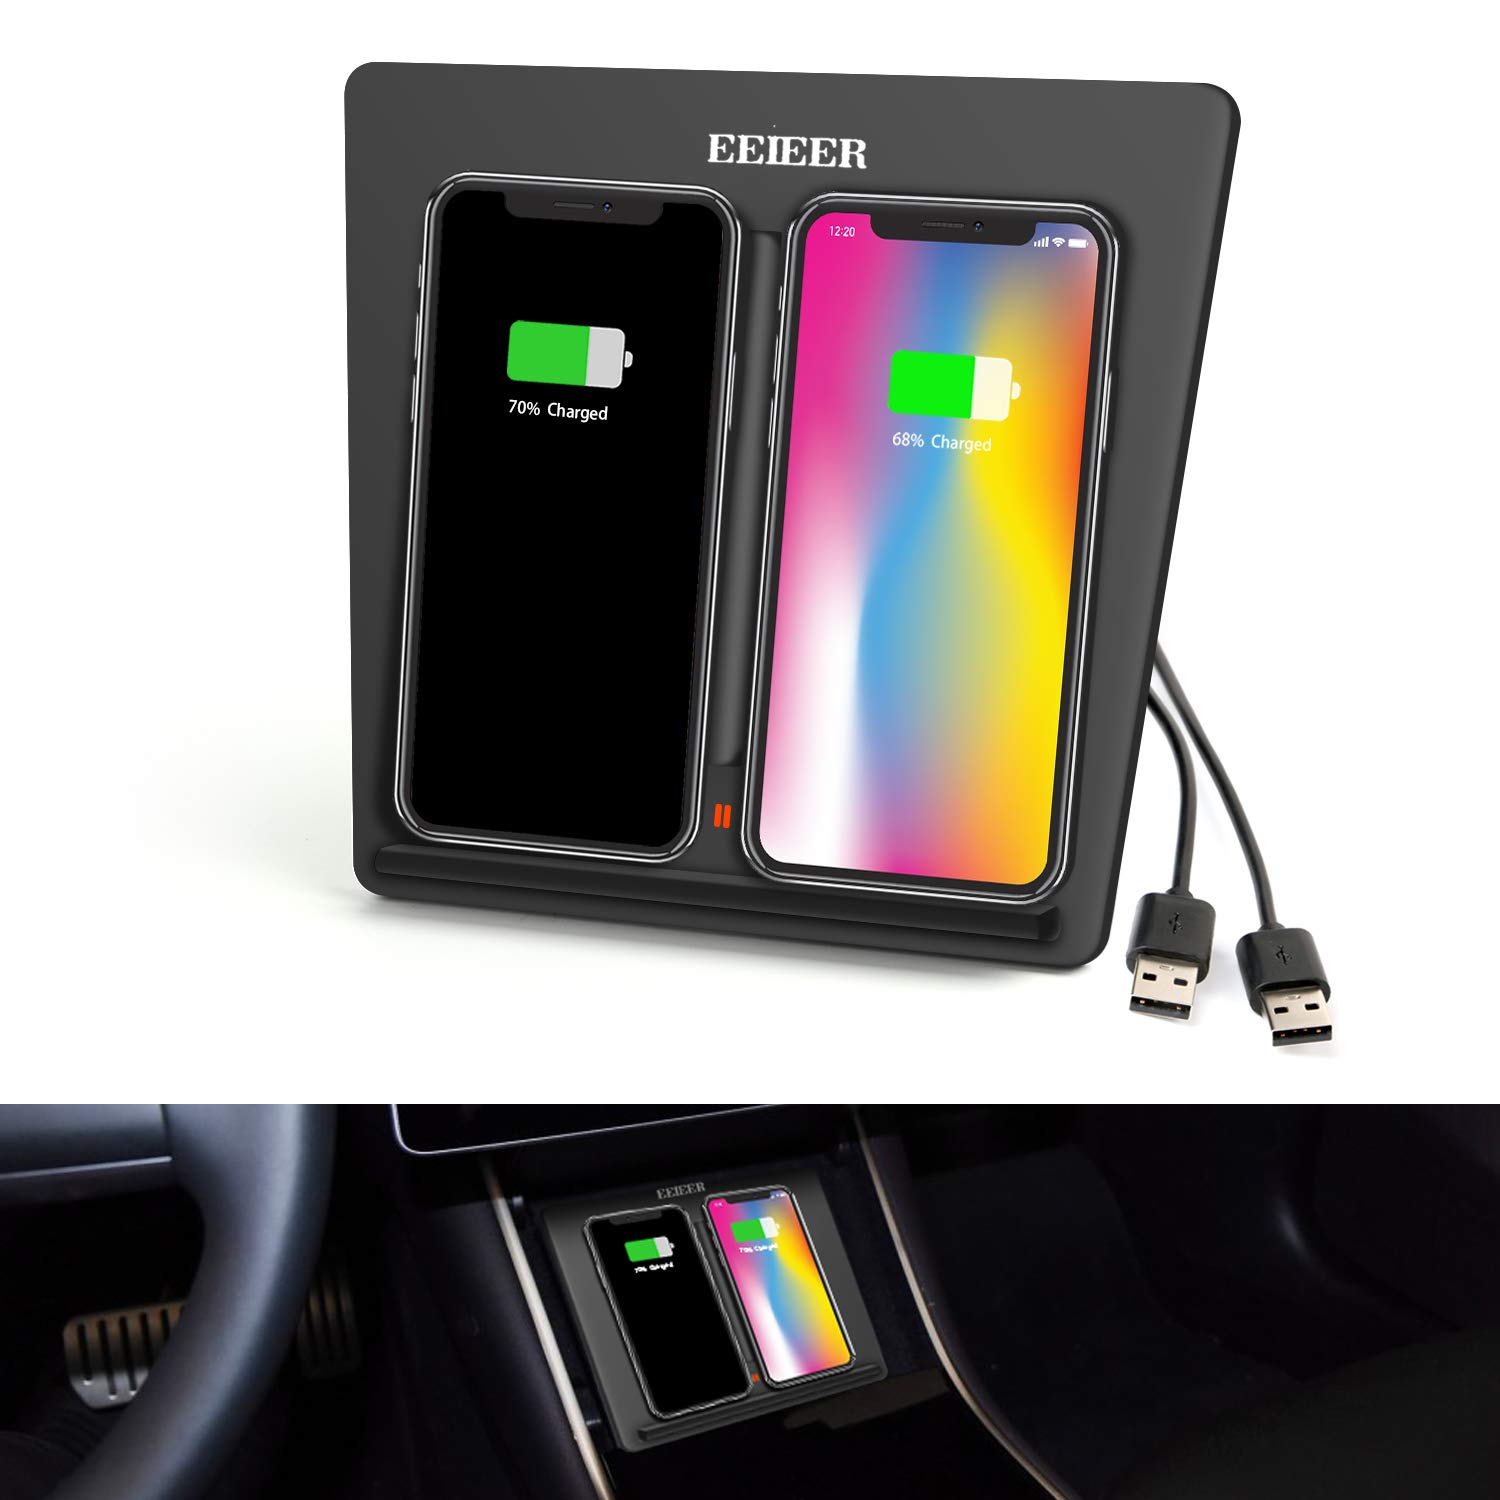 Wireless Charger for Tesla Model 3, EEIEER Tesla M3 Center Console Charging Pad with Dual USB Ports, Dual Phones Charging